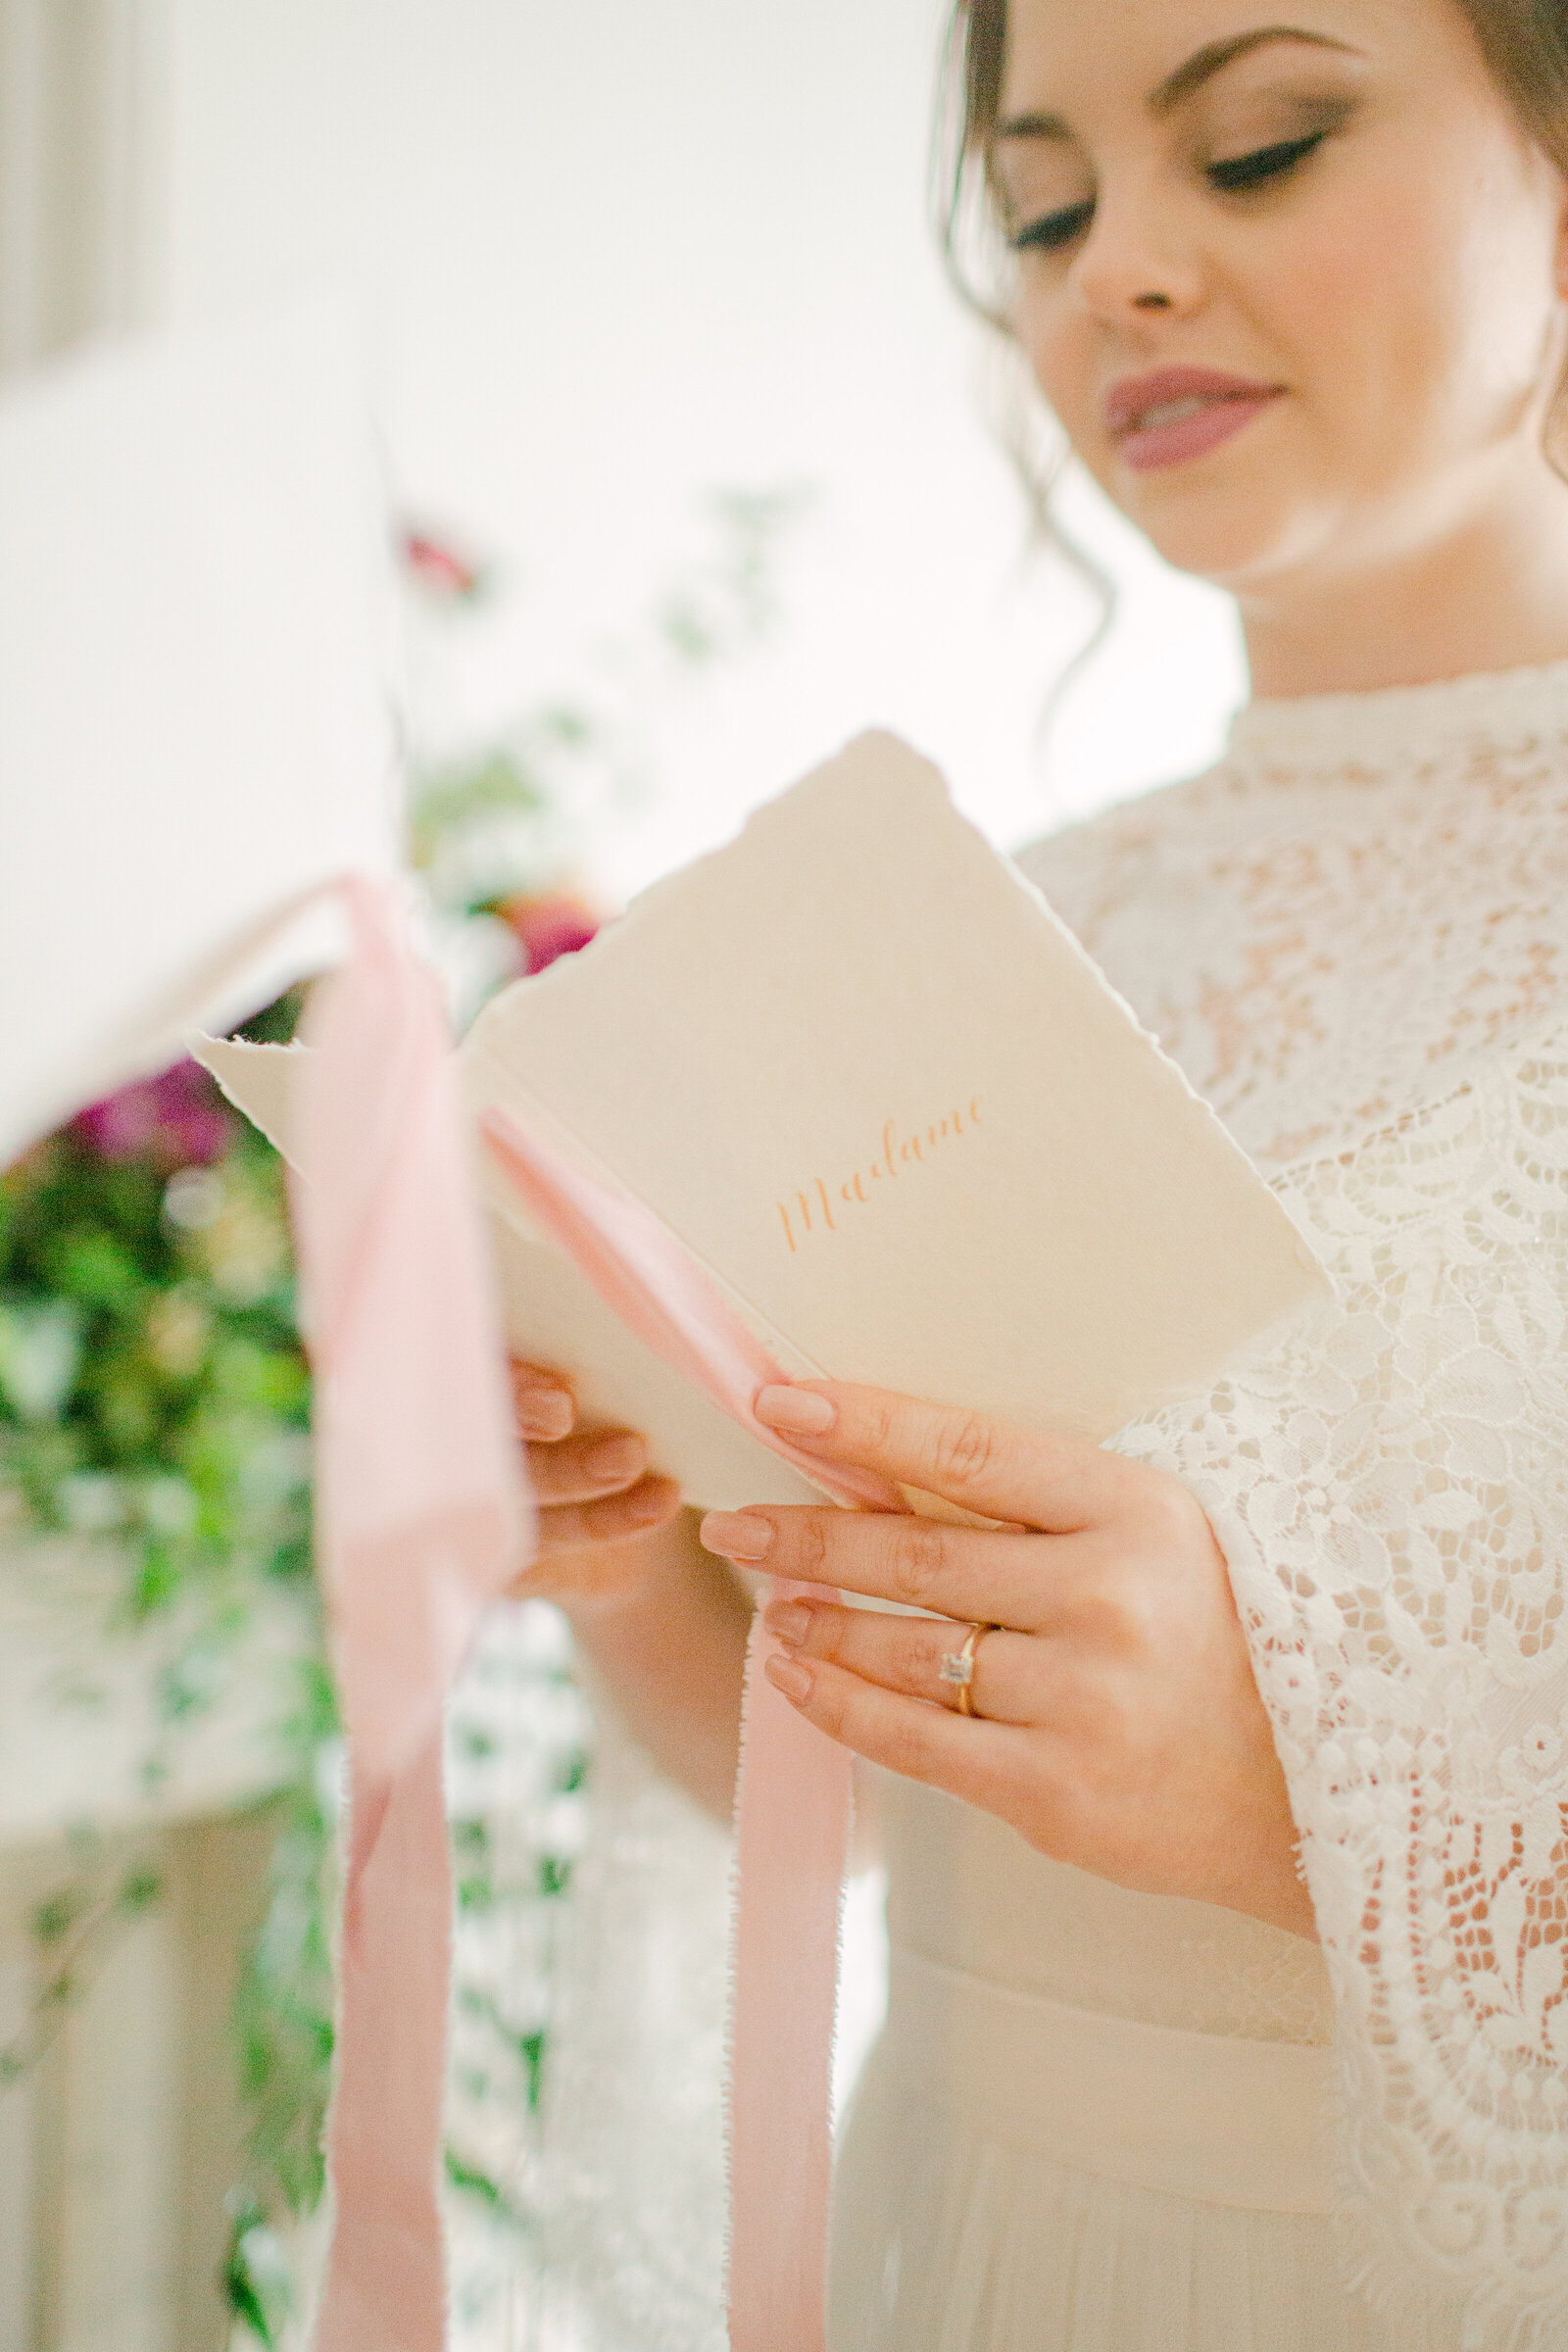 bride facing groom holding vow book and exchanging her vows